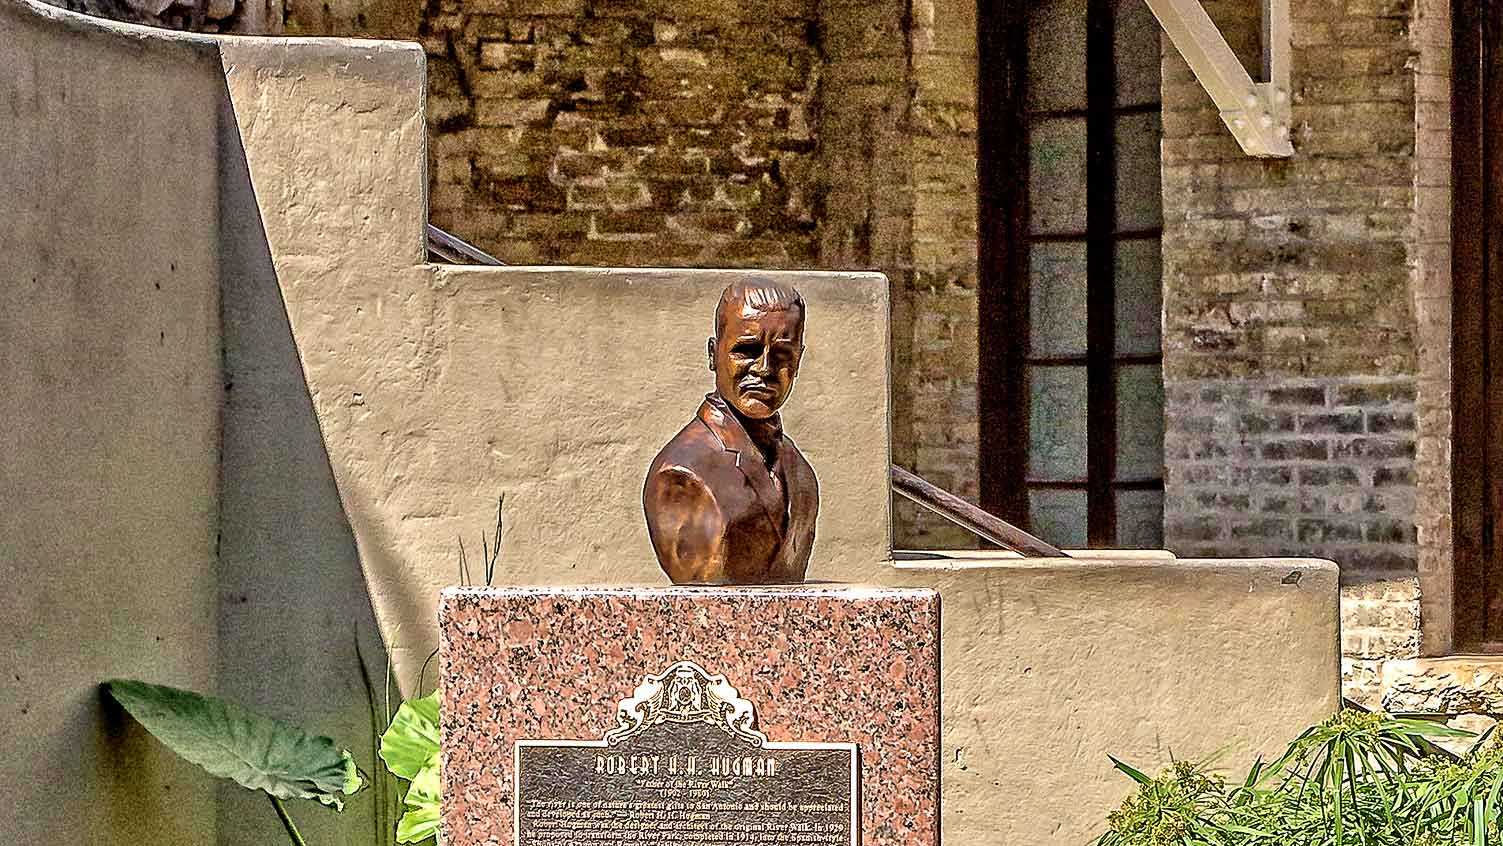 Bust of Robert H. H. Hugman on the River Walk